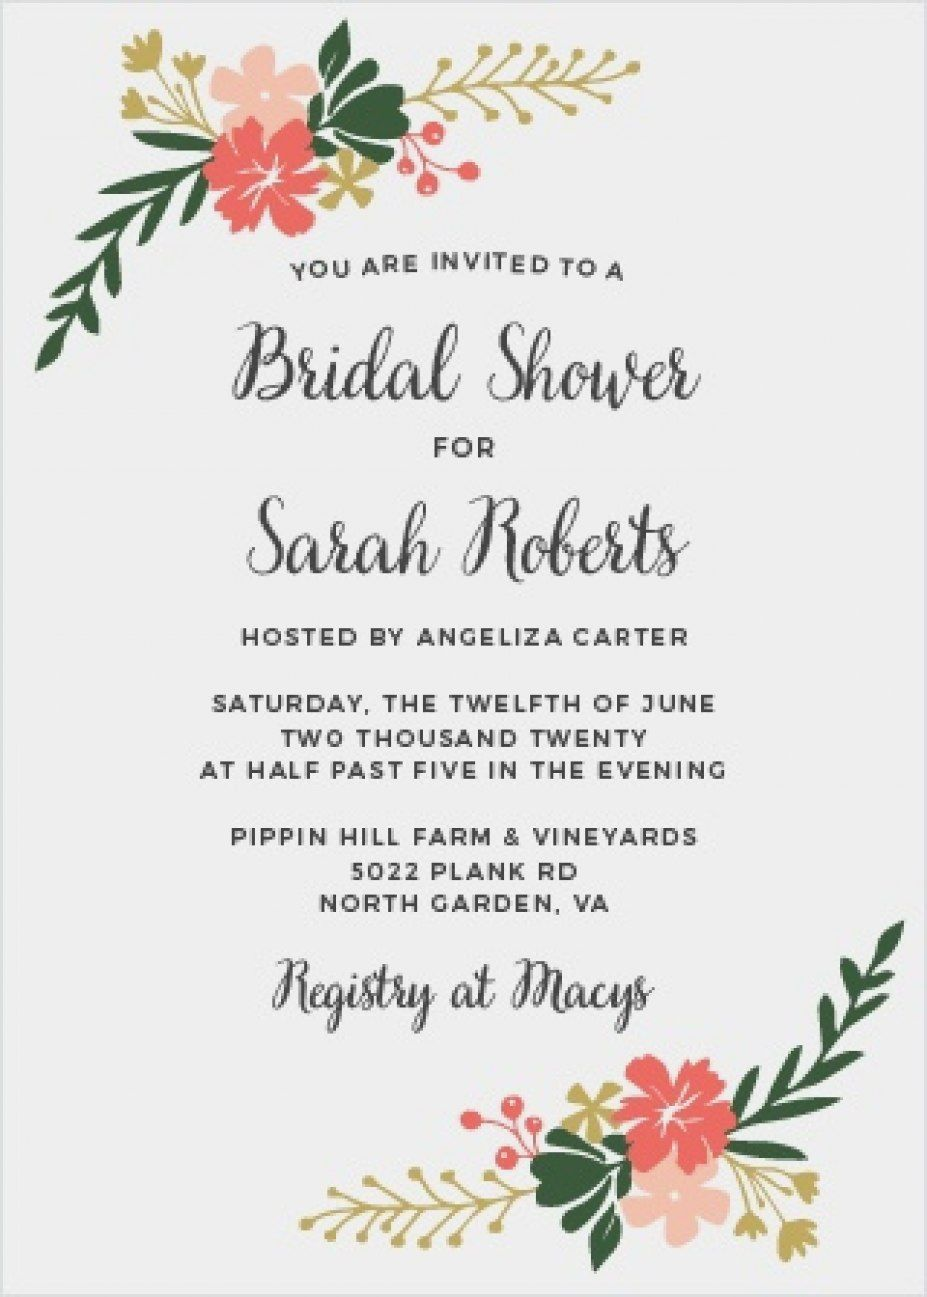 Garden Party Bridal Shower Invitations In 2020 Bridal Shower Invitations Garden Party Bridal Shower Bridal Shower Flowers